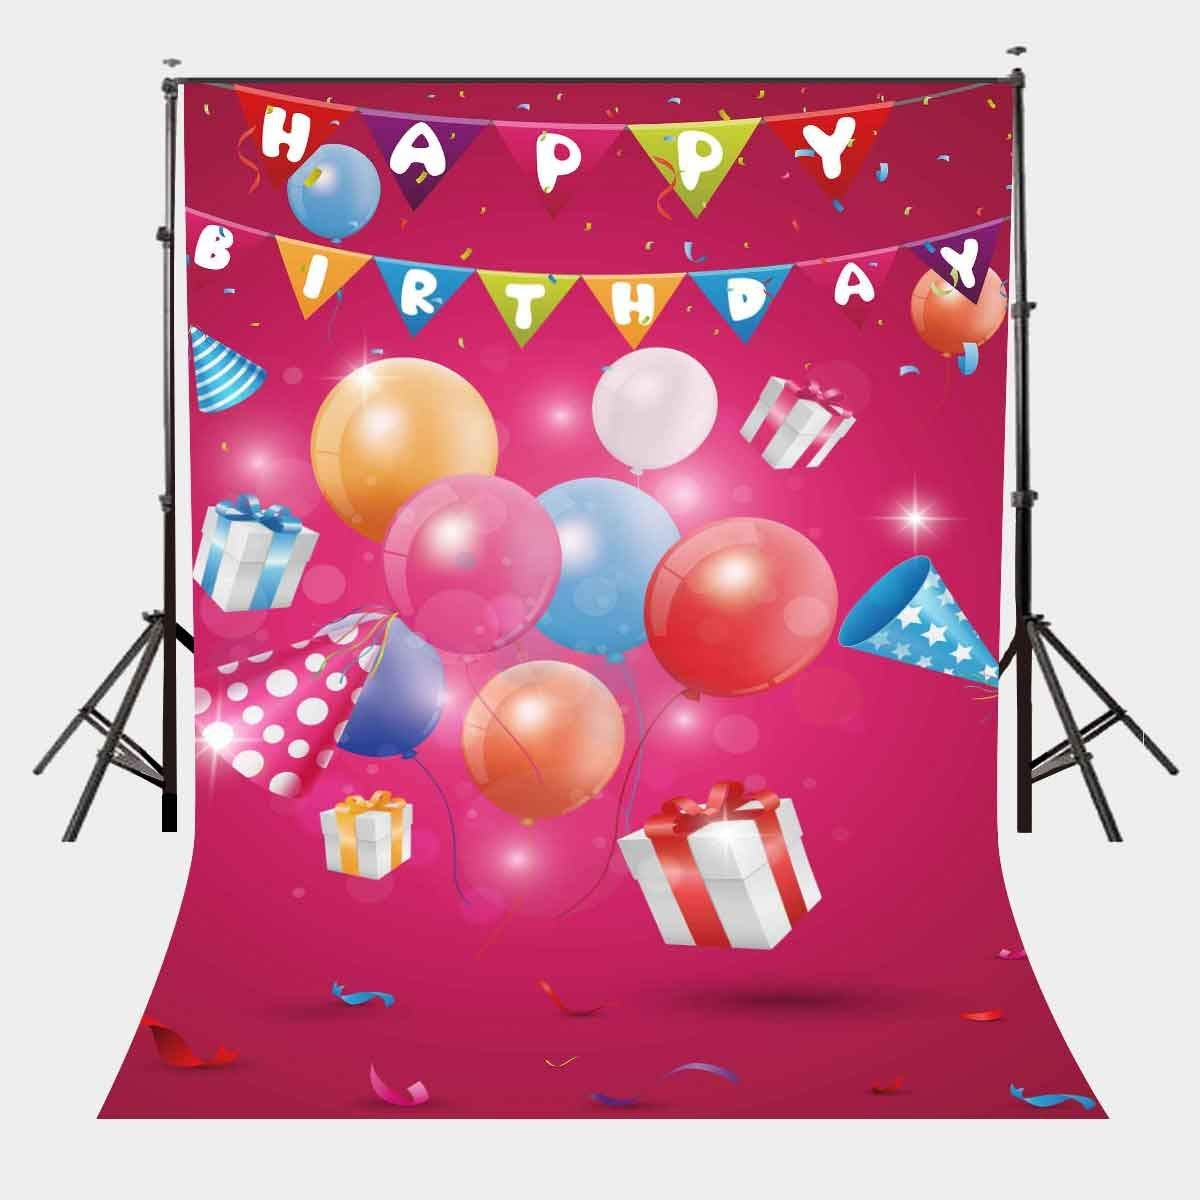 150x220cm Happy Red Gift Room Backdrop Colorful Balloons Colorful Flags Photography Background Birthday Party150x220cm Happy Red Gift Room Backdrop Colorful Balloons Colorful Flags Photography Background Birthday Party